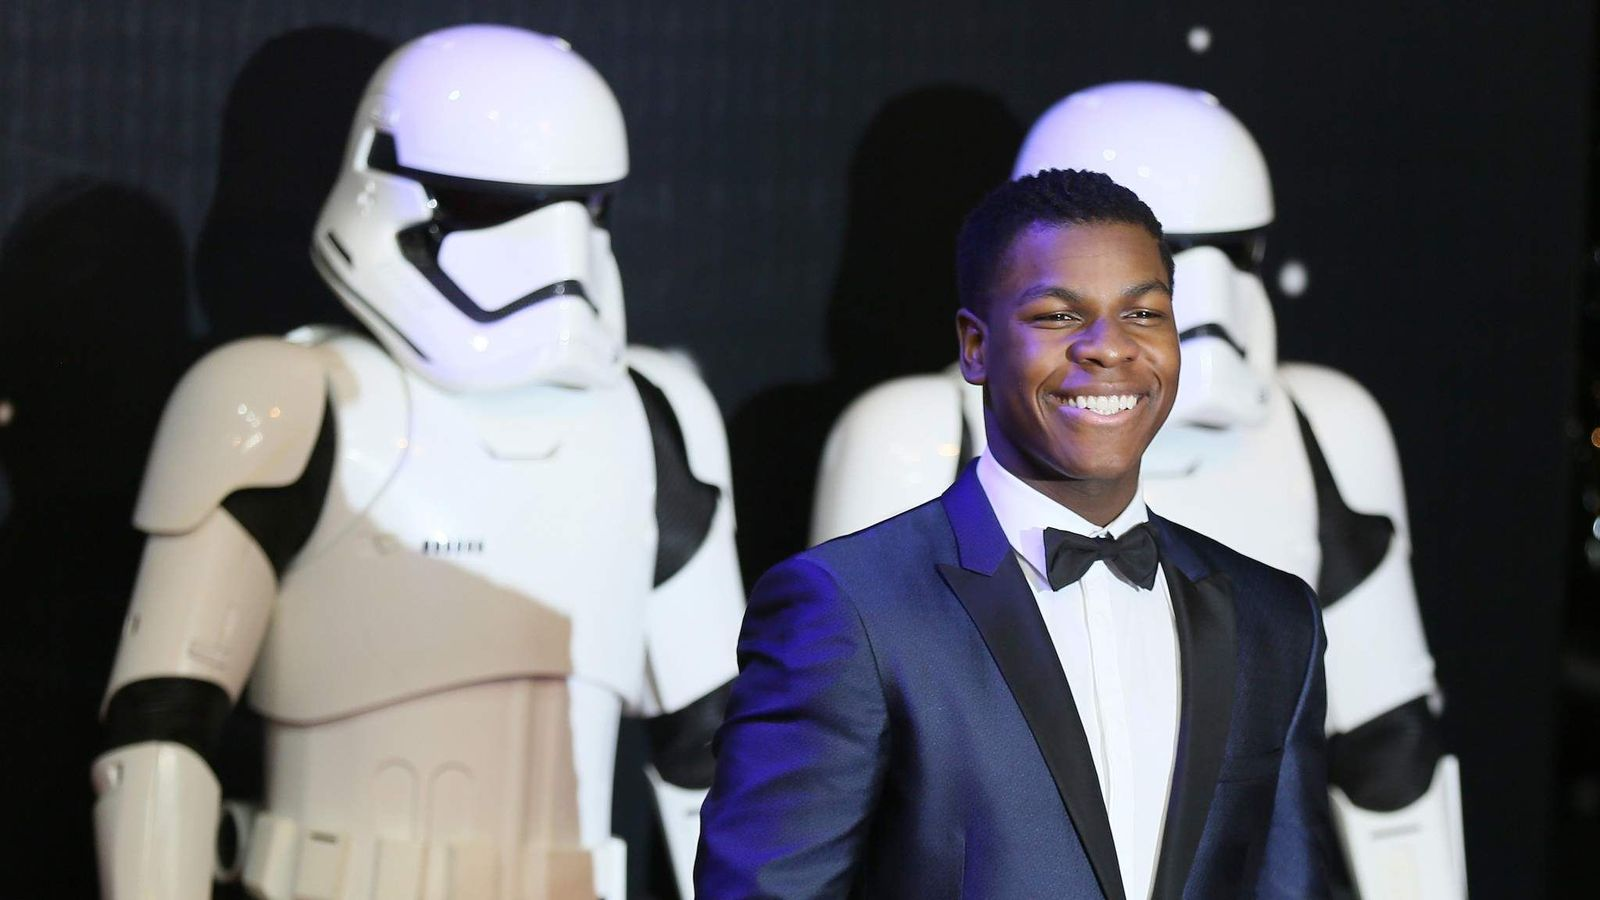 Actor John Boyega arrives at the European Premiere of Star Wars